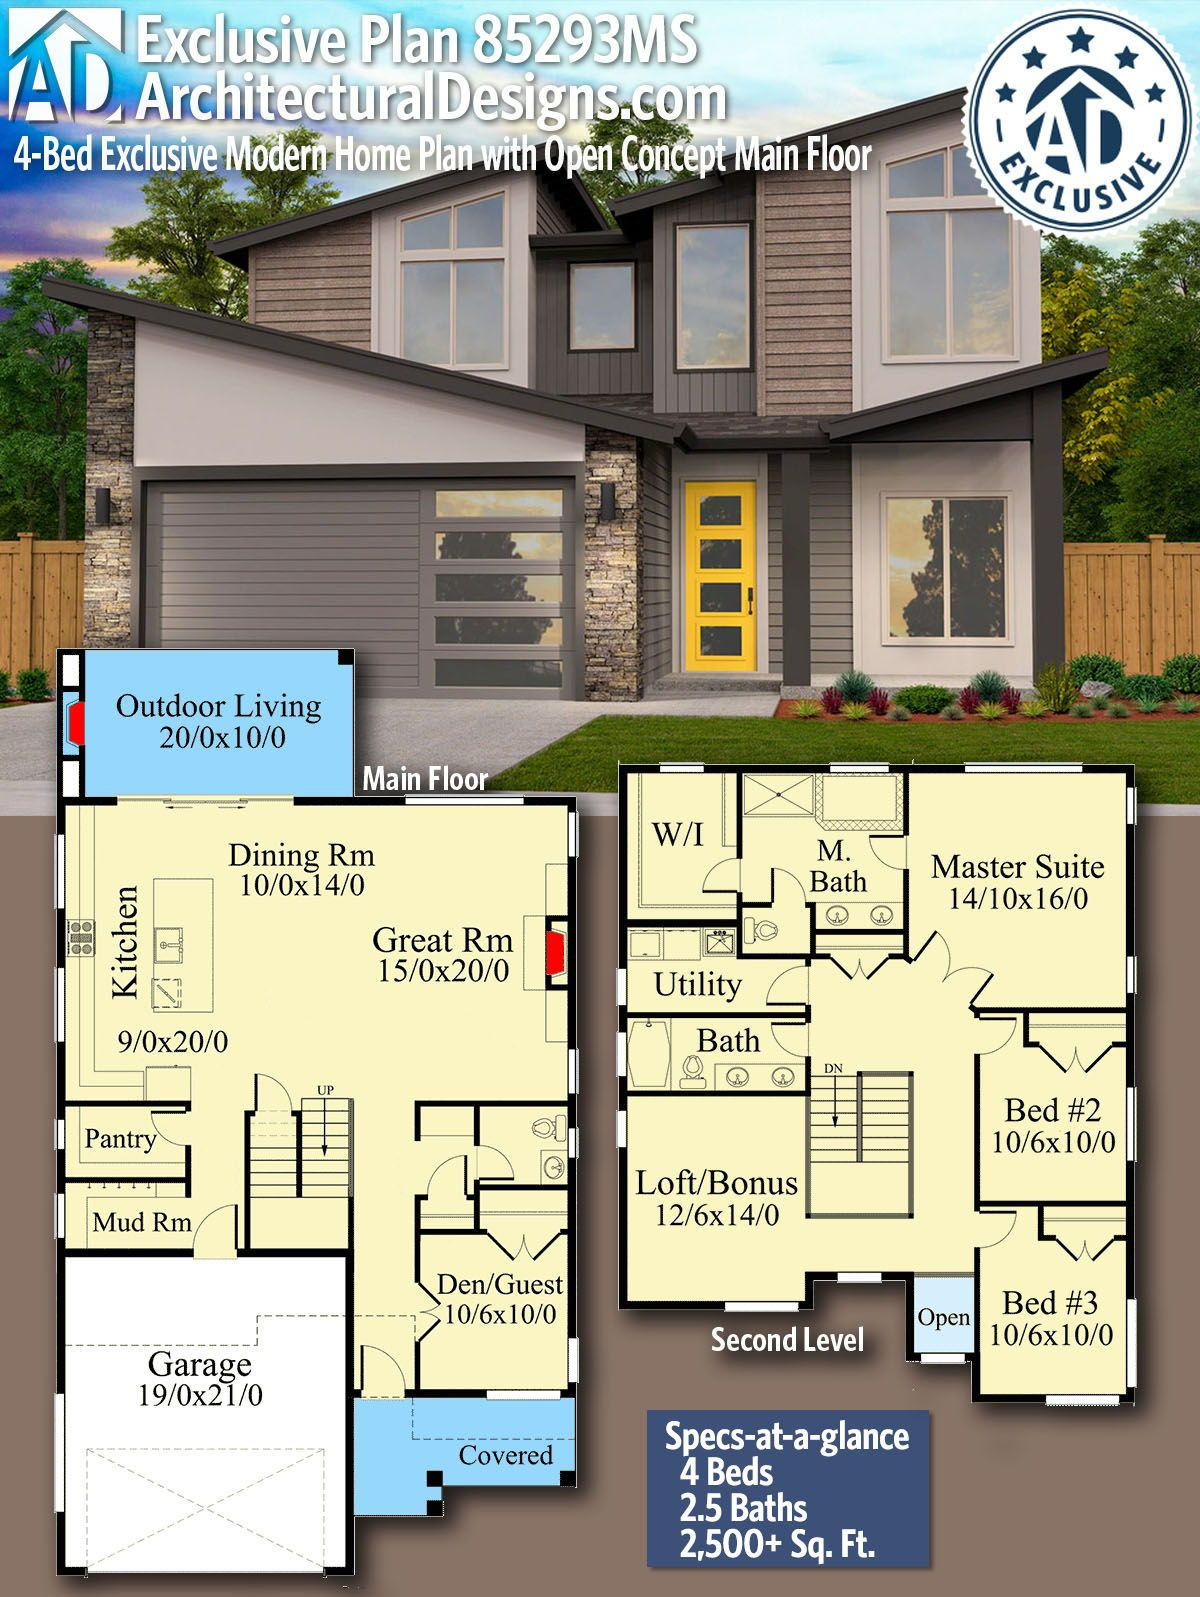 Plan 85293ms 4 Bed Exclusive Modern Home Plan With Open Concept Main Floor House Plans Modern House Plans Modern House